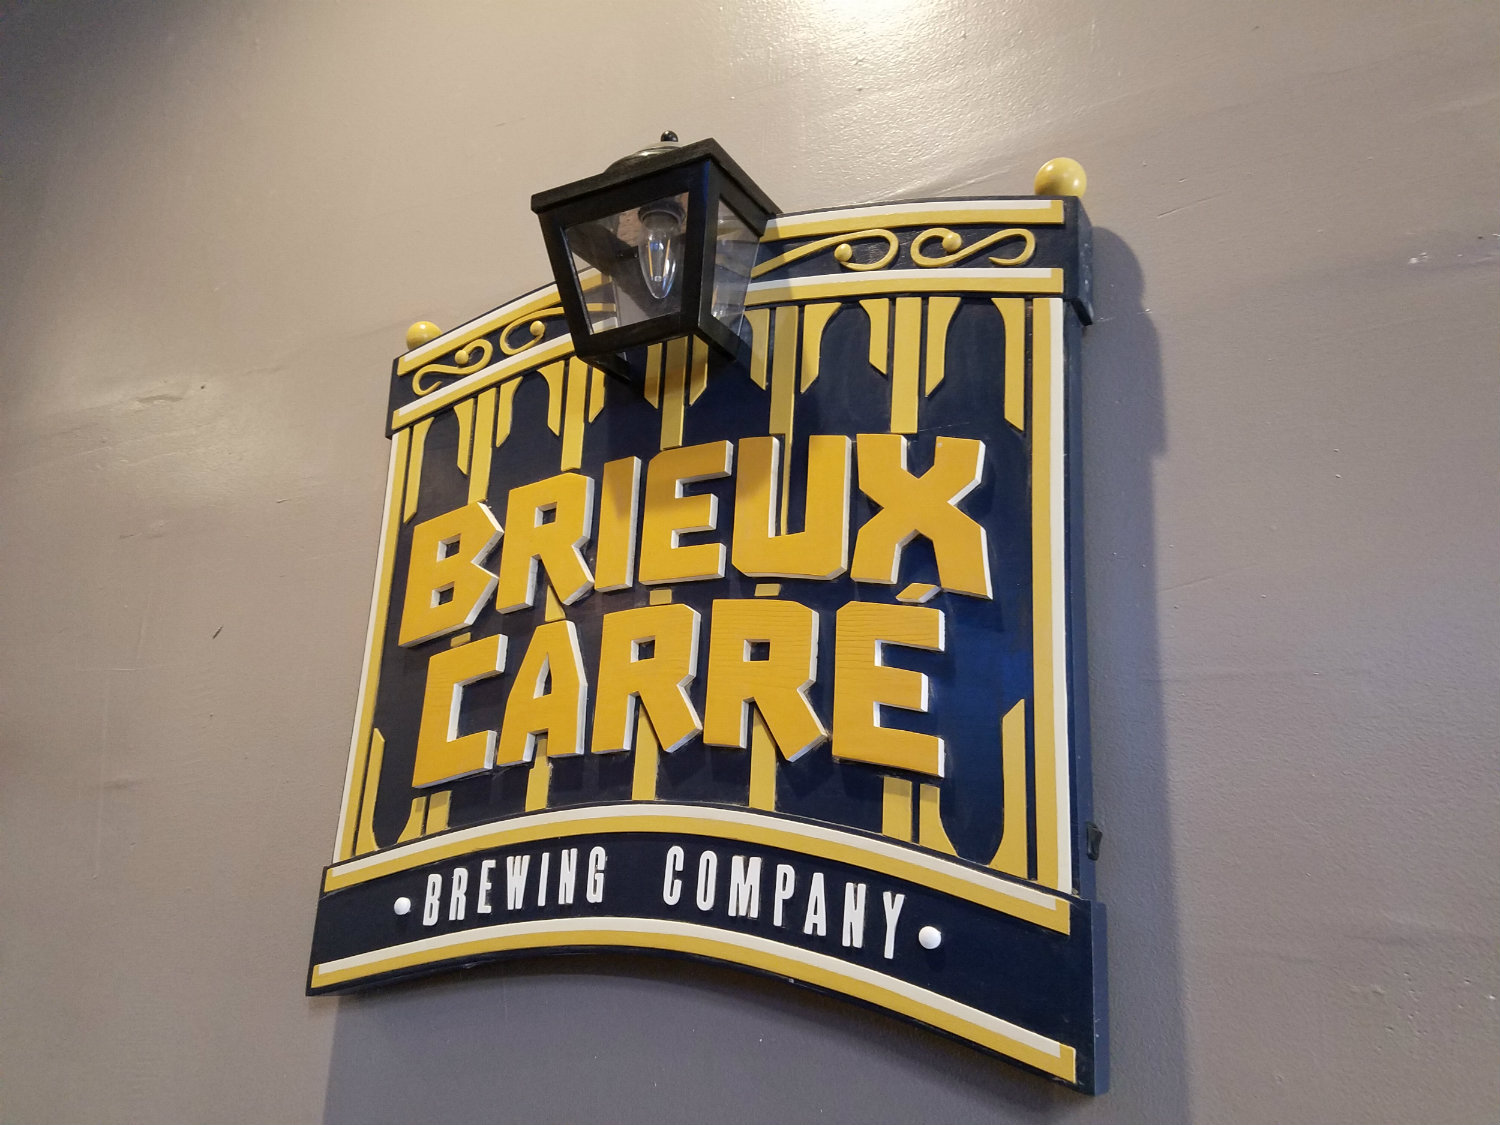 Brieux Carre sign-small